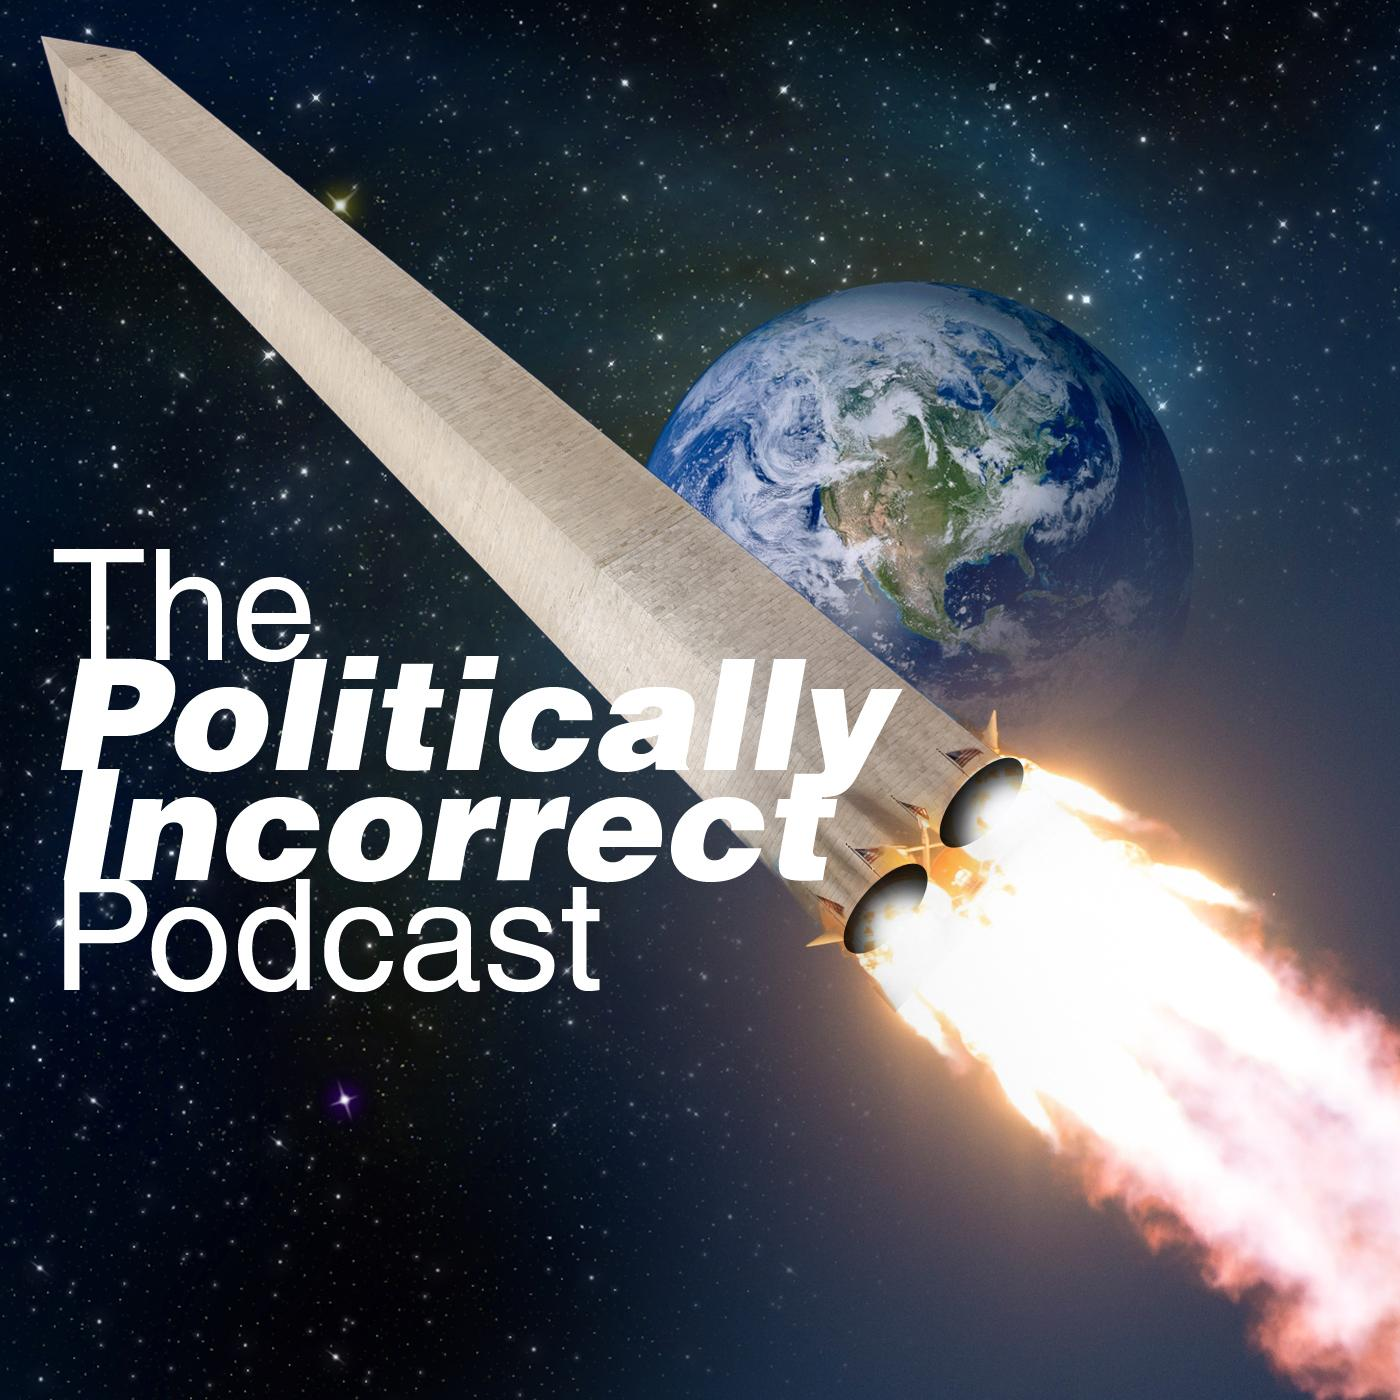 The Politically Incorrect Podcast with guest Jeremy Newberger